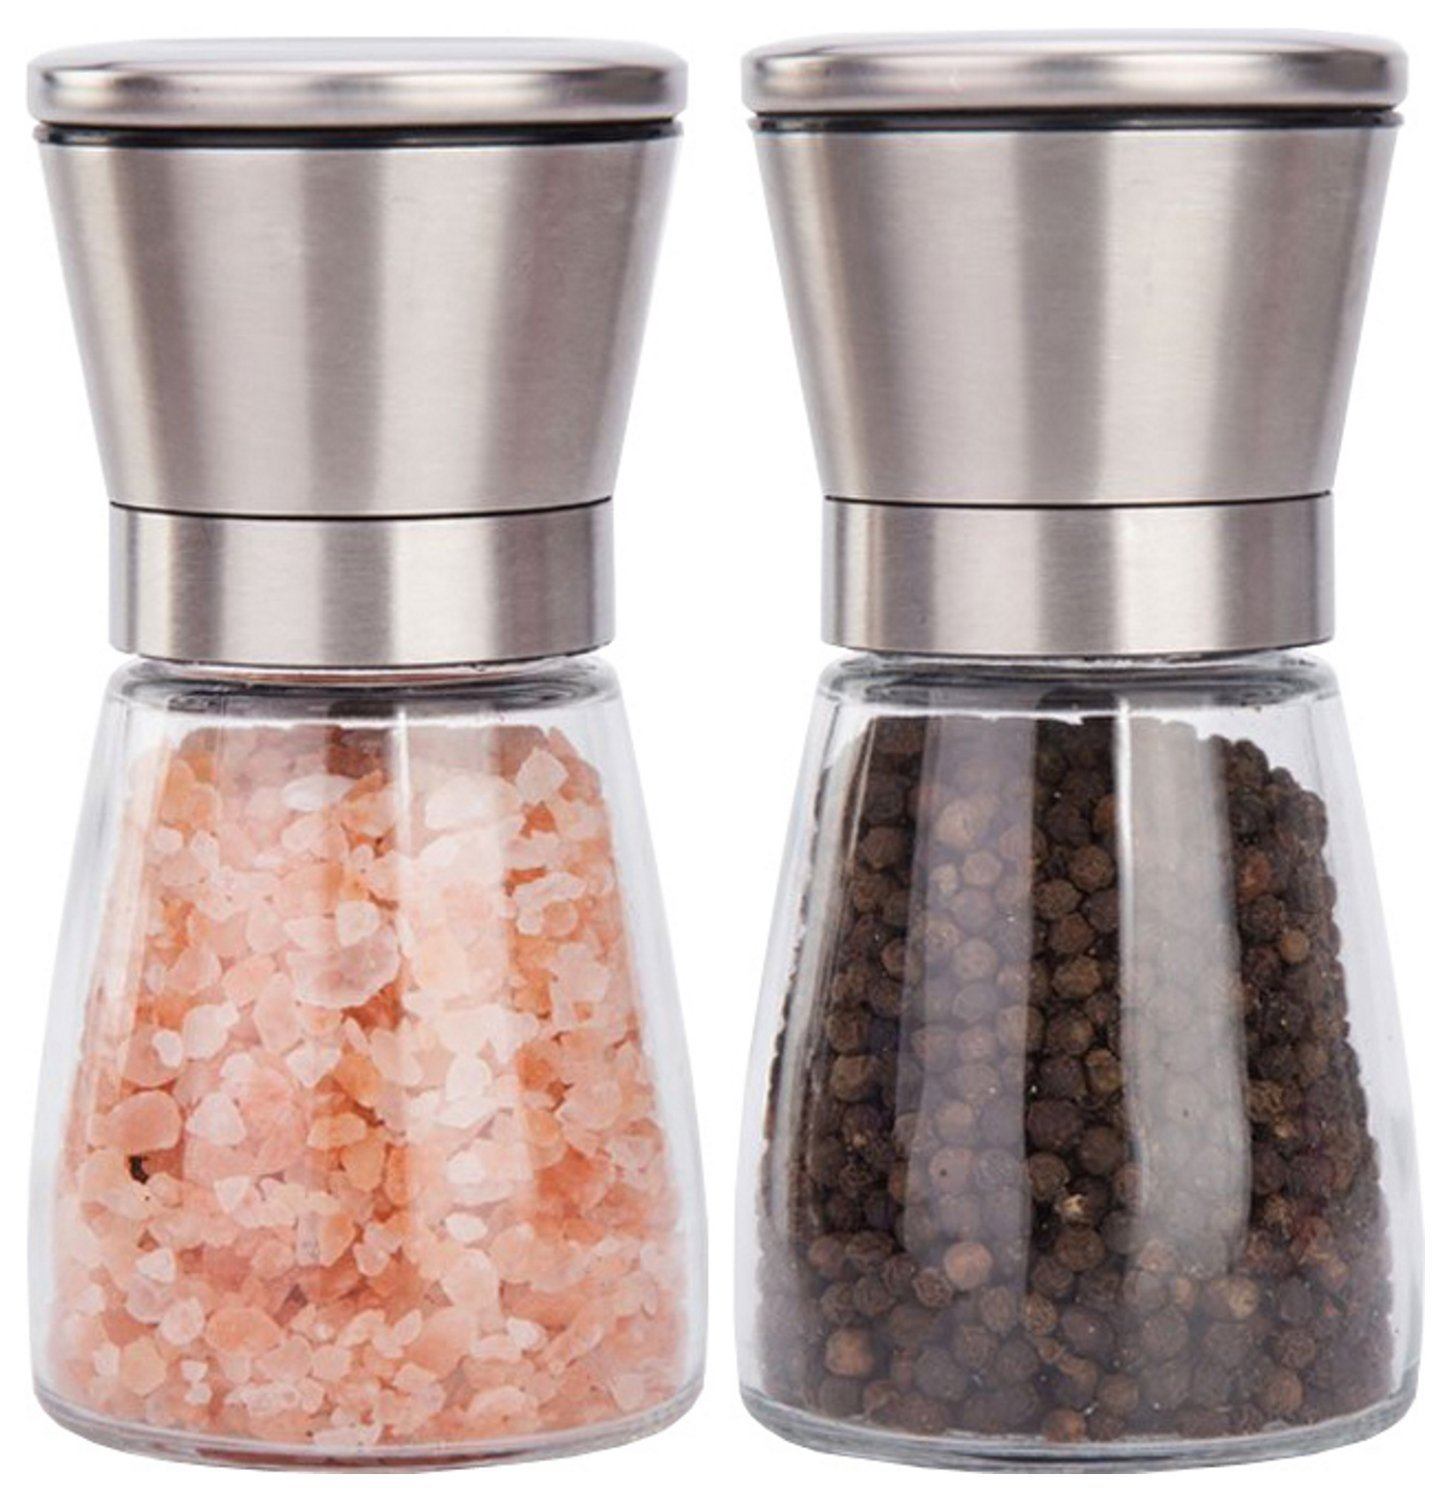 Salt and Pepper Grinder Set - Best Salt Pepper Shaker Grinder for White, Black, Red Pepper Grinder Mill-Premium Stainless Steel and Elegant Clear Glass-Easy to Fill Salt and Pepper Mill Set (Set of 2)